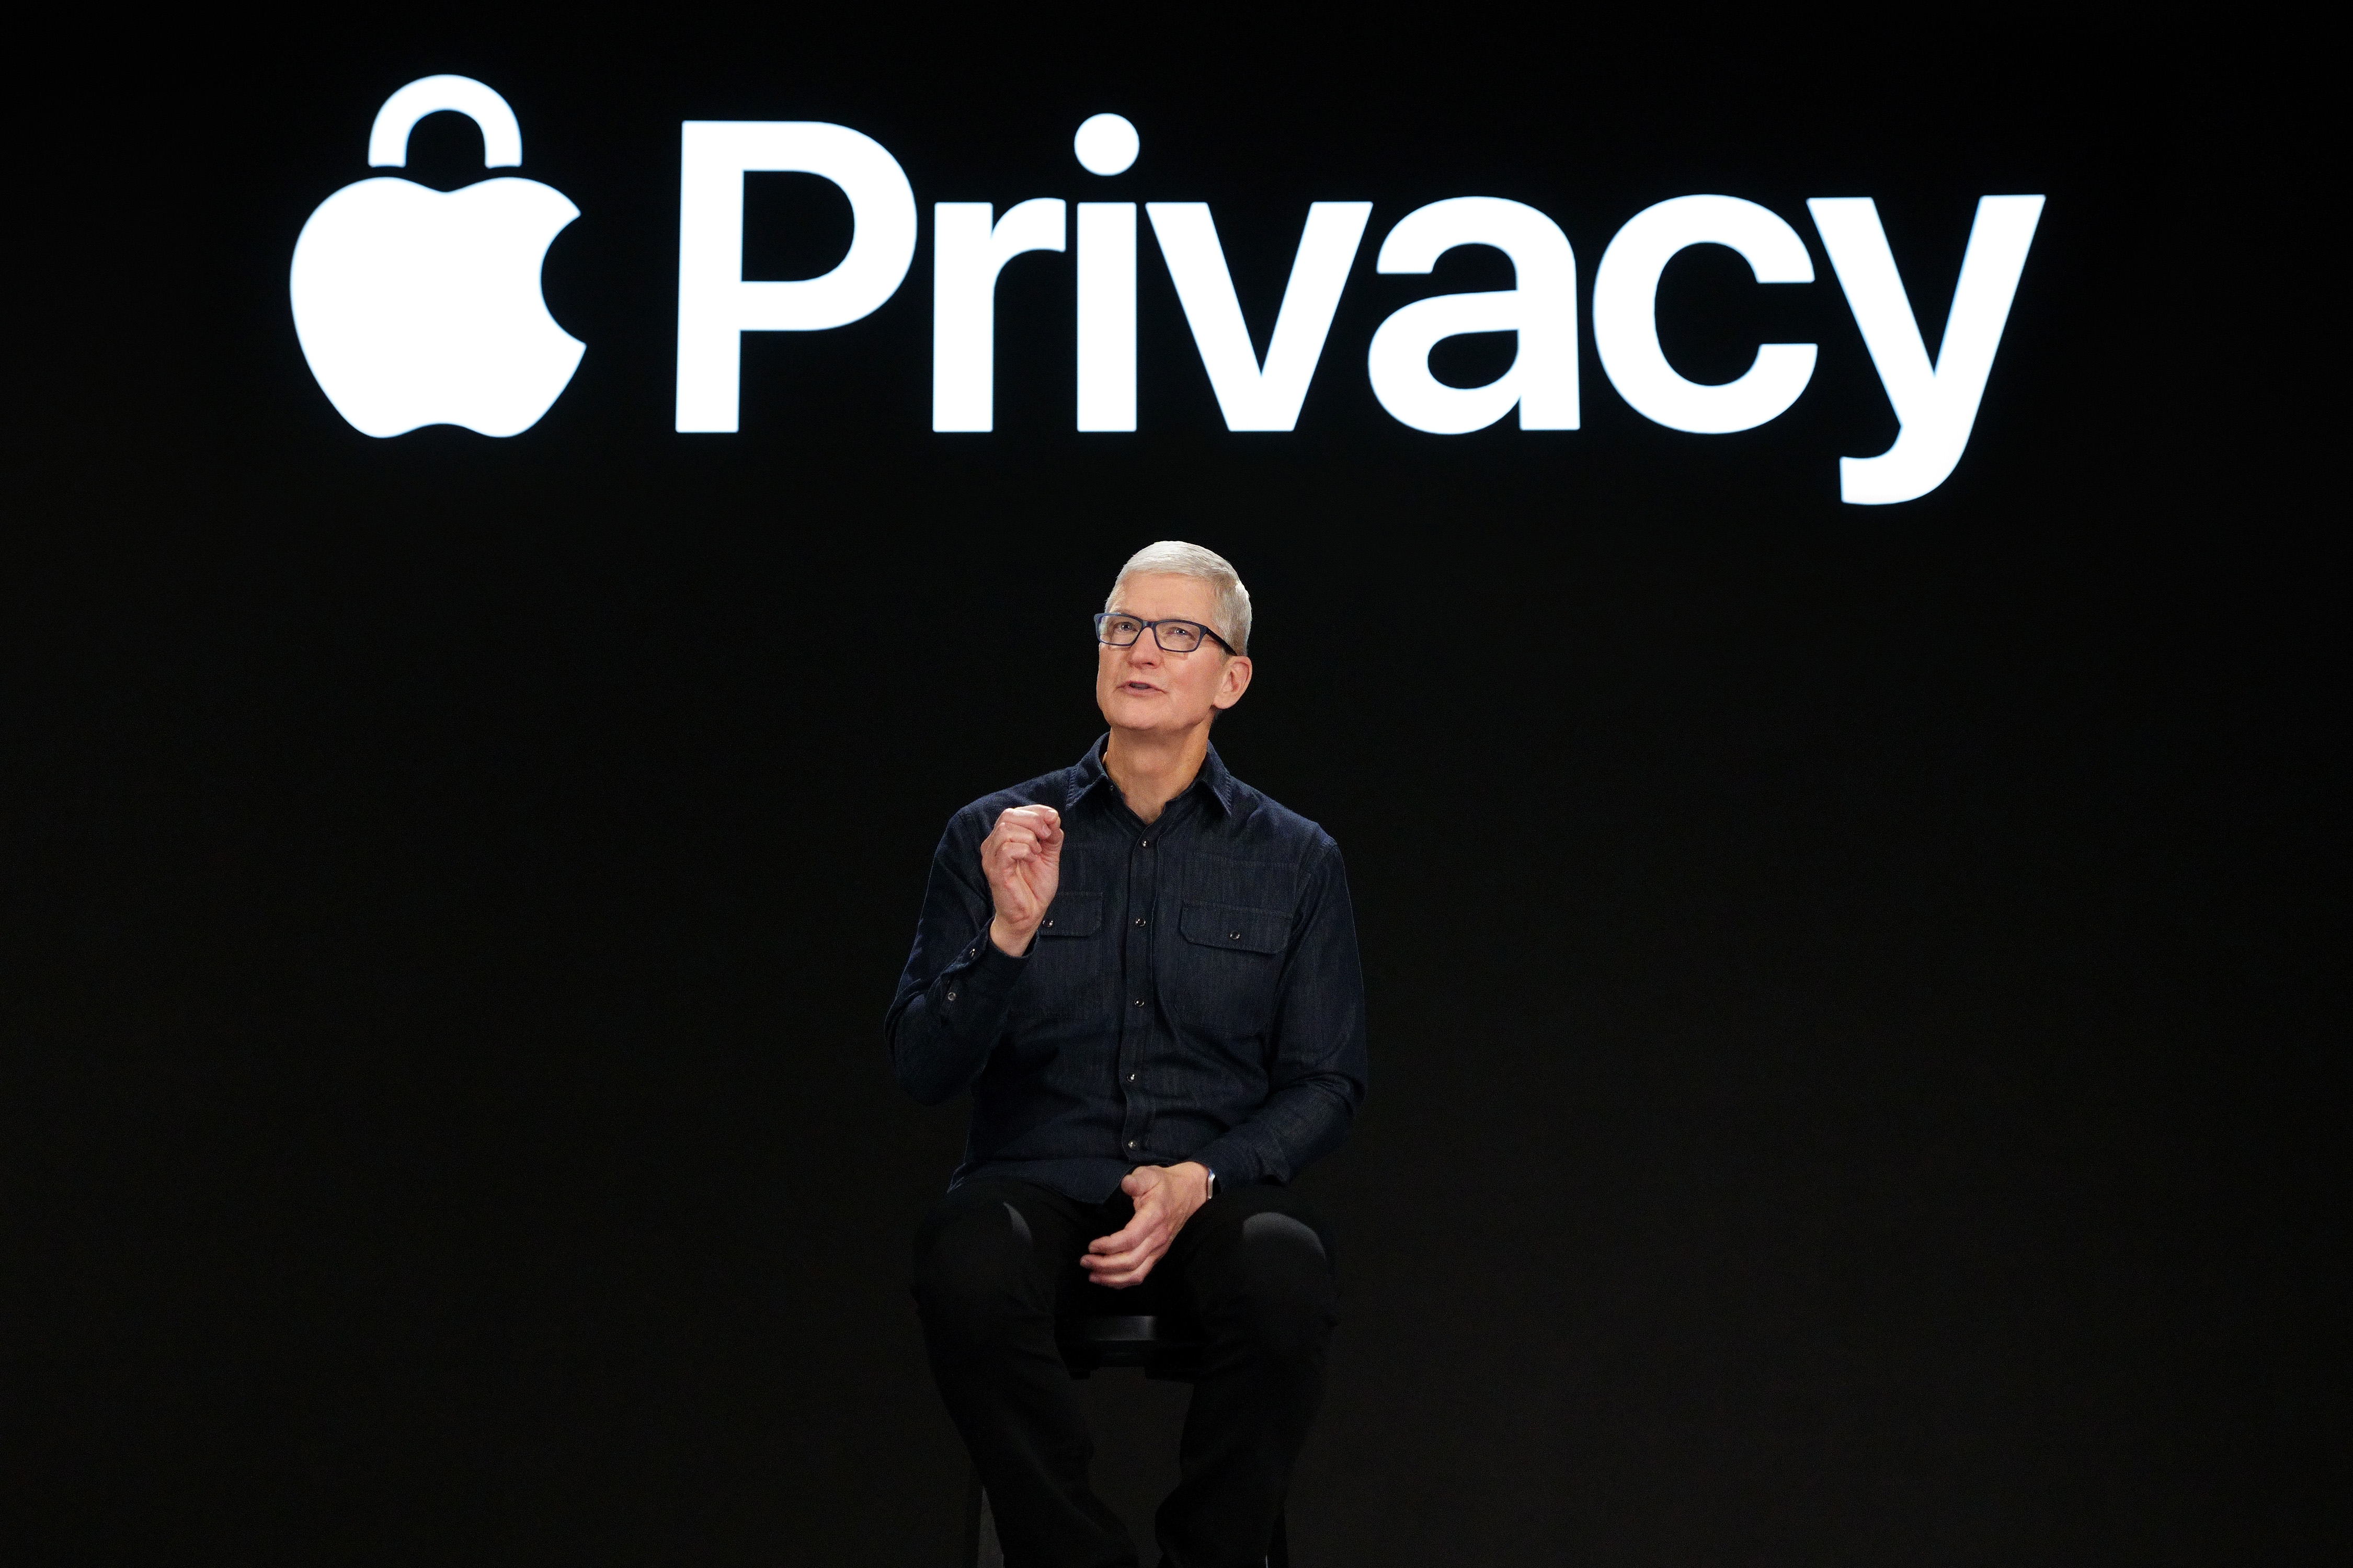 Apple CEO Tim Cook previews powerful new privacy protections at AppleÕs Worldwide Developers Conference at Apple Park, on June 7, 2021.